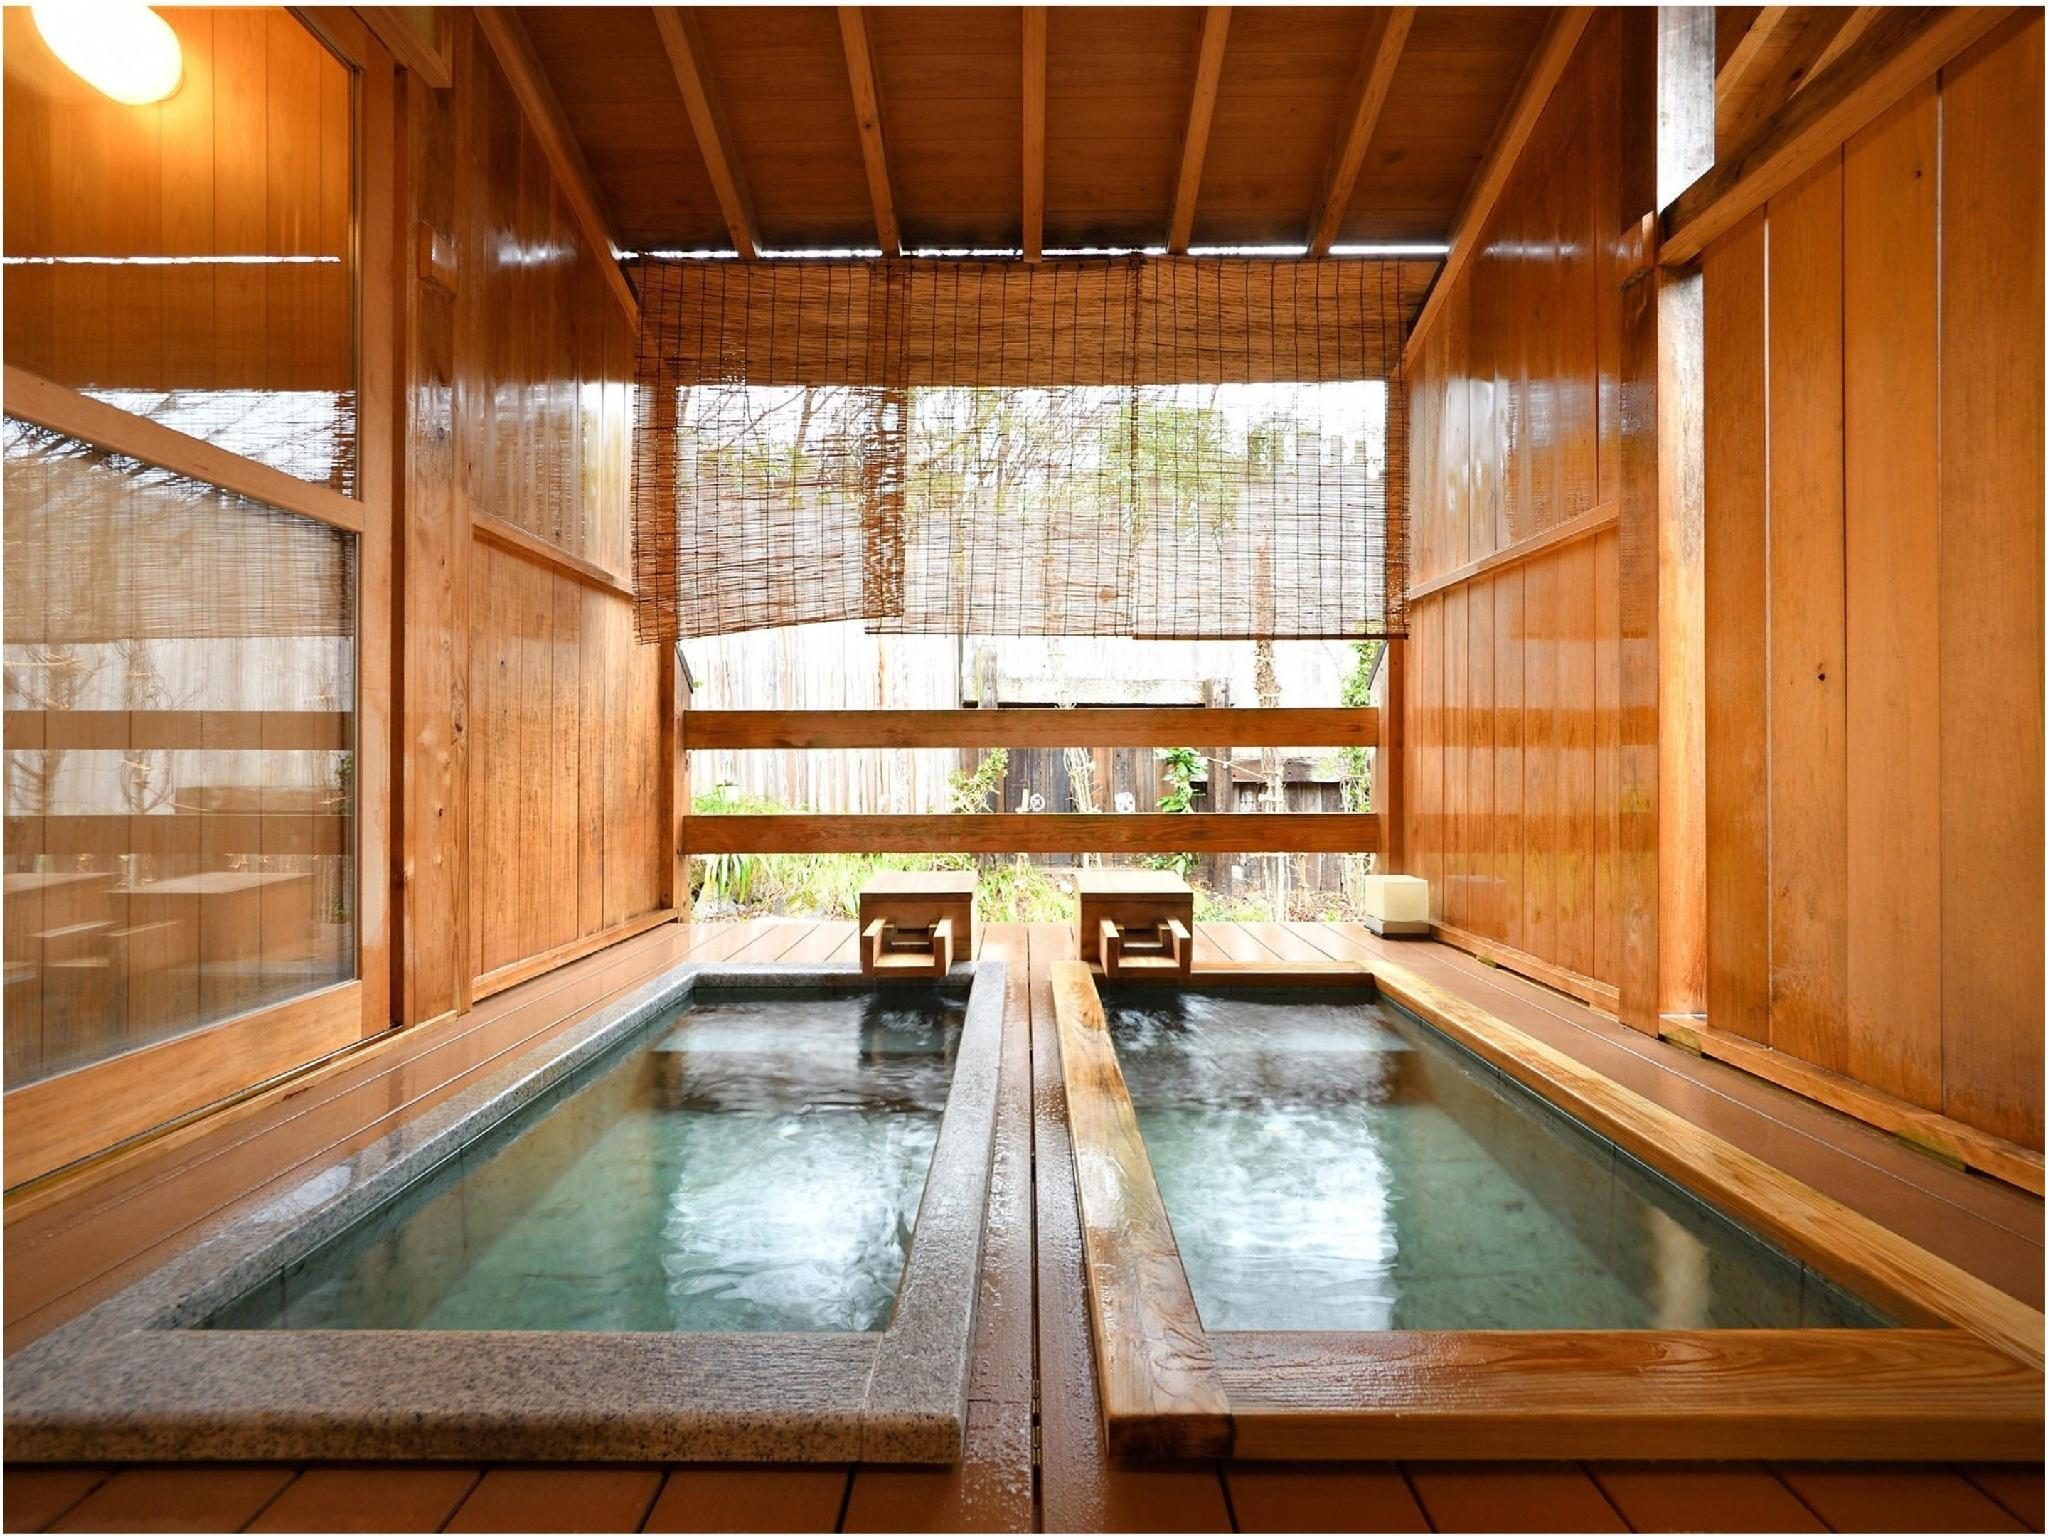 다다미 침대 객실(별채/노천탕) (Detached Japanese/Western-style Room with Open-air Bath)